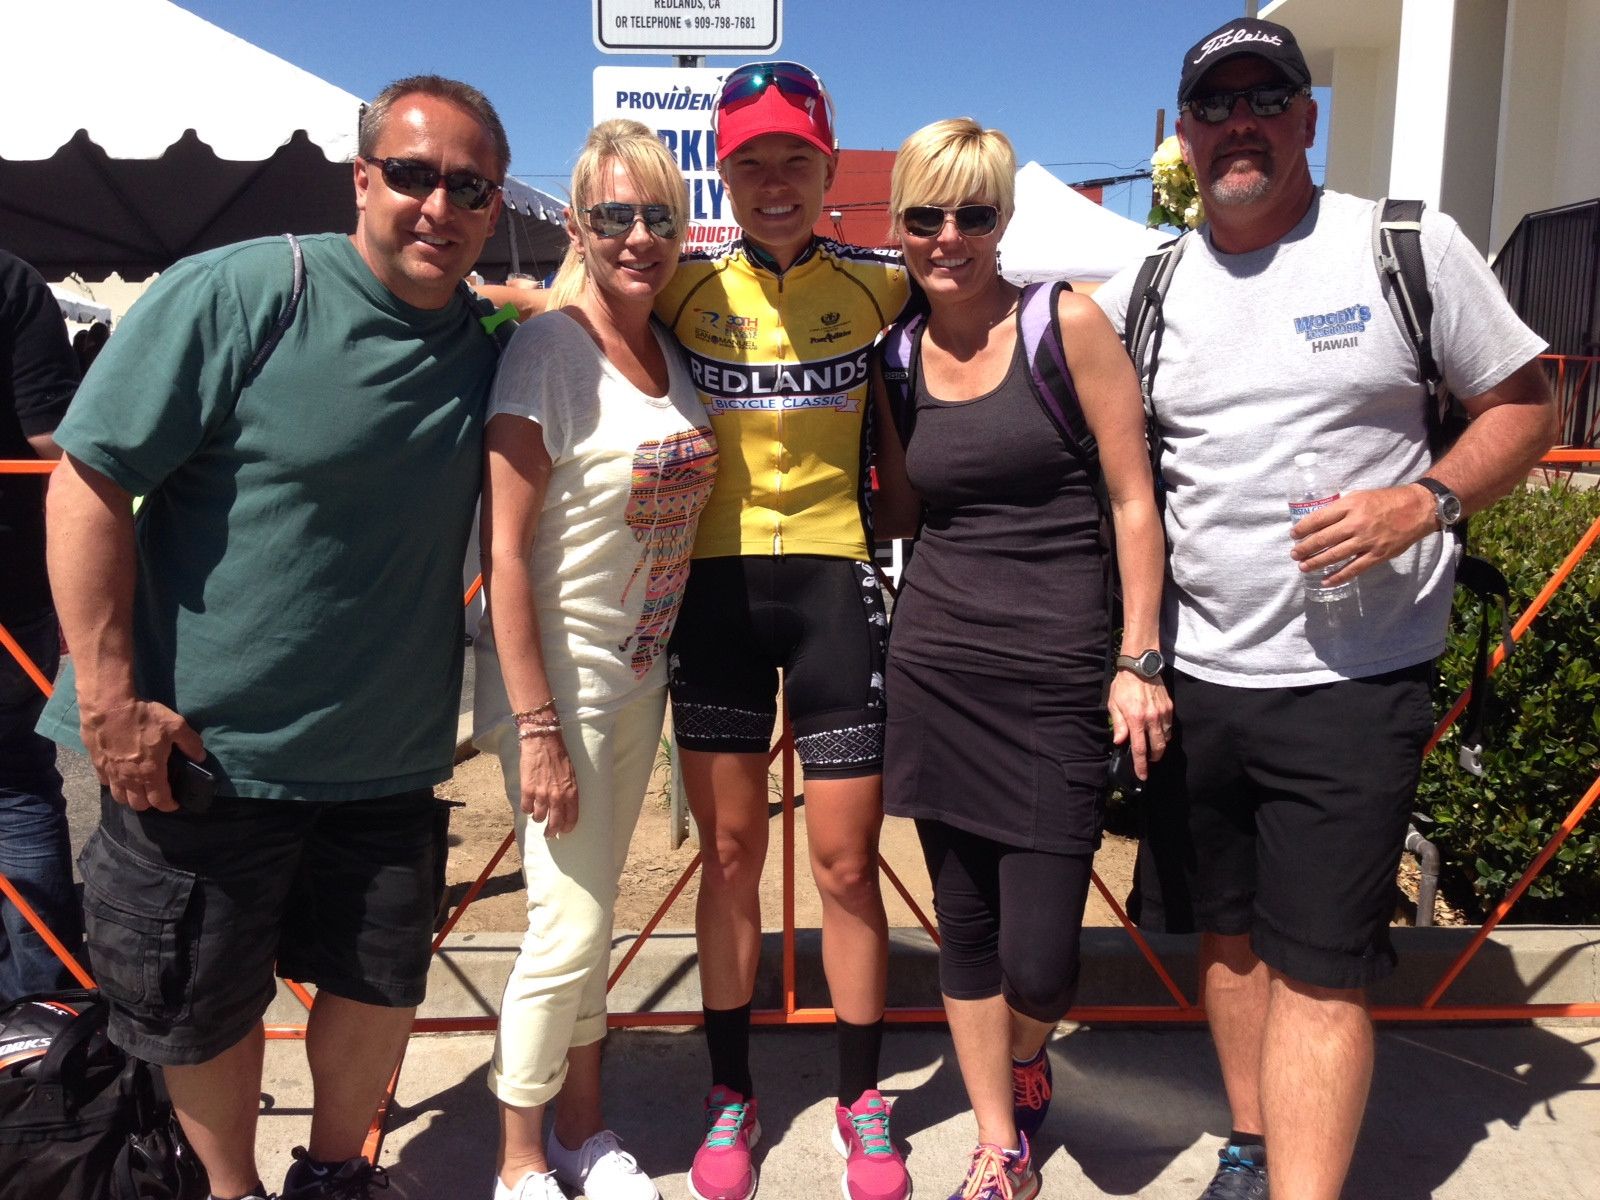 All four of my incredible parents: From left to right, Step Dad Wes, Mom Sher, me, Step Mom Cortney and Dad Rick :)